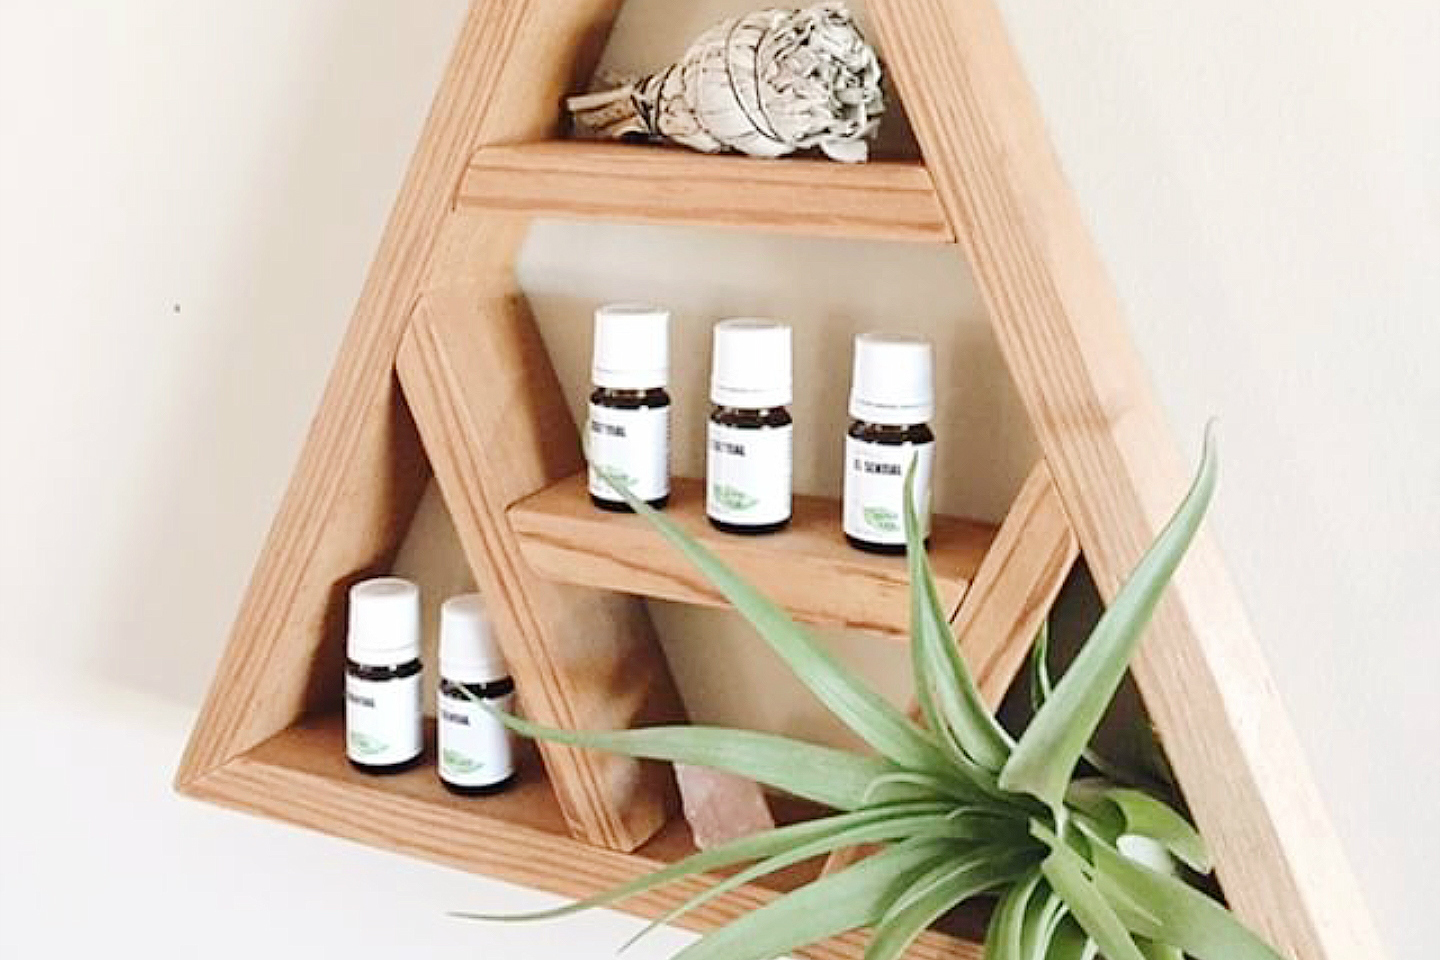 Essential Oil Shelf Sets   I've teamed up with 'Needle & Pine' to offer these beautiful essential oil shelf sets. 2 styles are available.